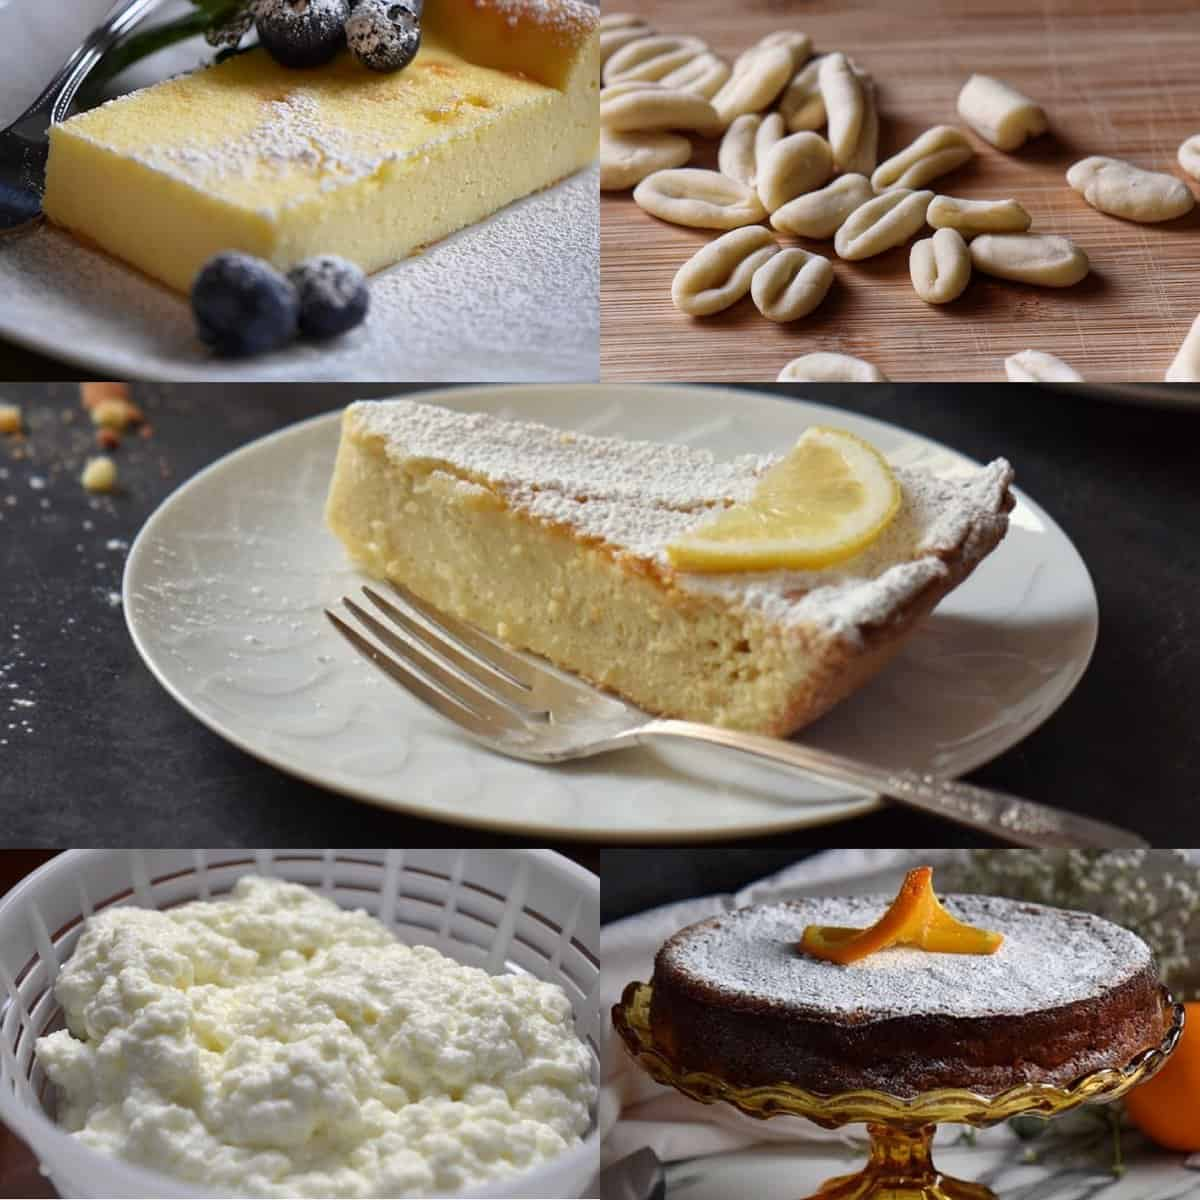 A photo collage of Ricotta Cheese Recipes, includes Ricotta Cake and Rice Ricotta Easter Pie.